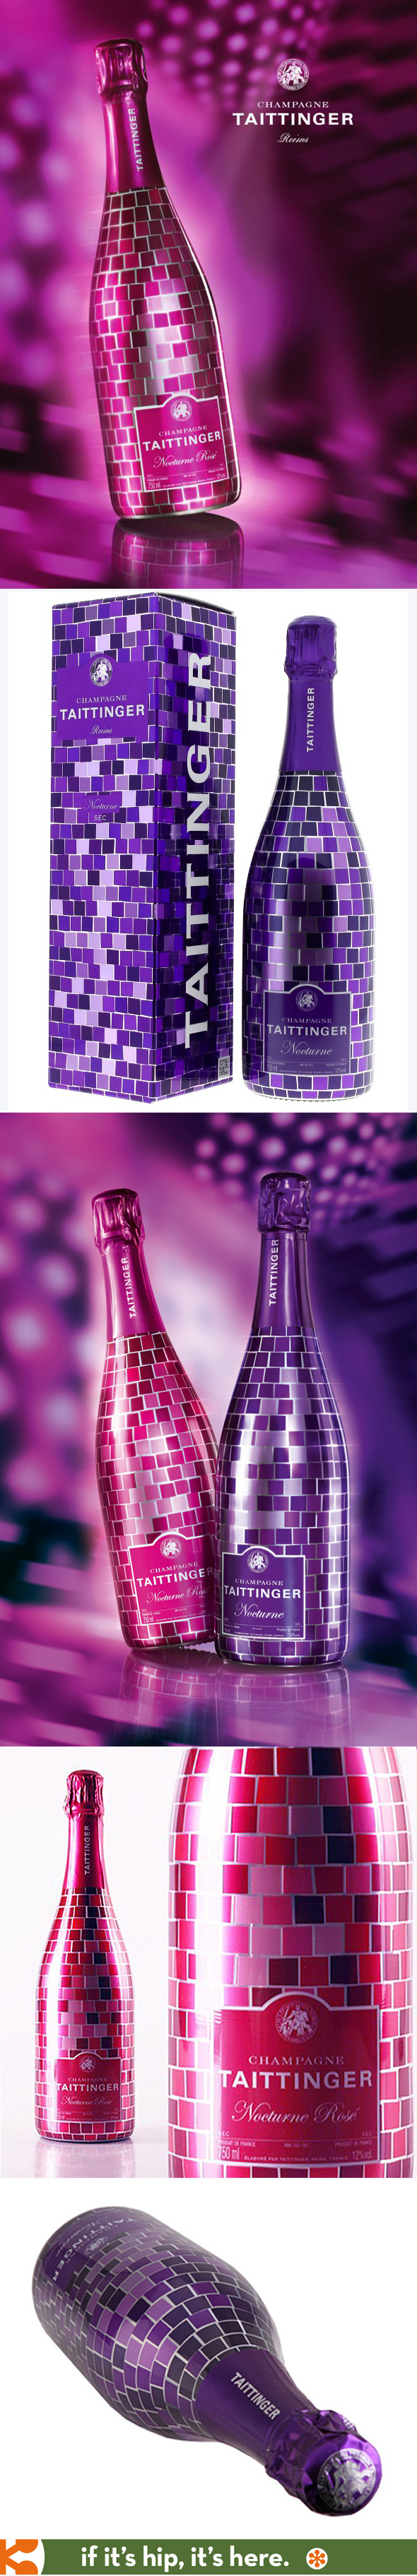 Loving Taittinger's limited Mosaic Disco packaging and bottles for Nocturne Rosé and Nocturne Sec.